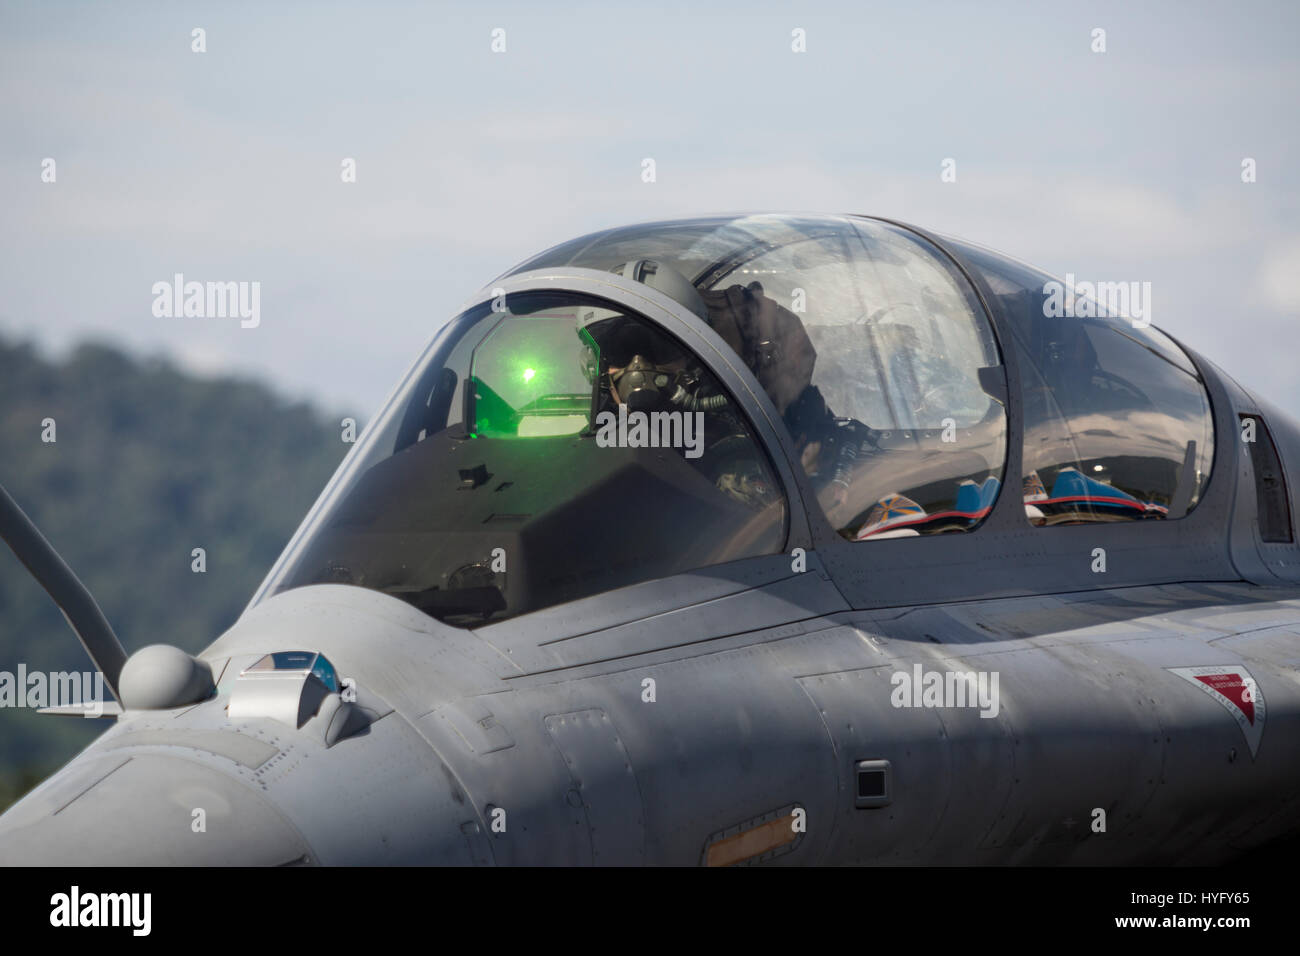 A Dassault Rafale Multirole fighter aircraft at the Langkawi International Maritime and Aerospace (LIMA) Exhibition - Stock Image